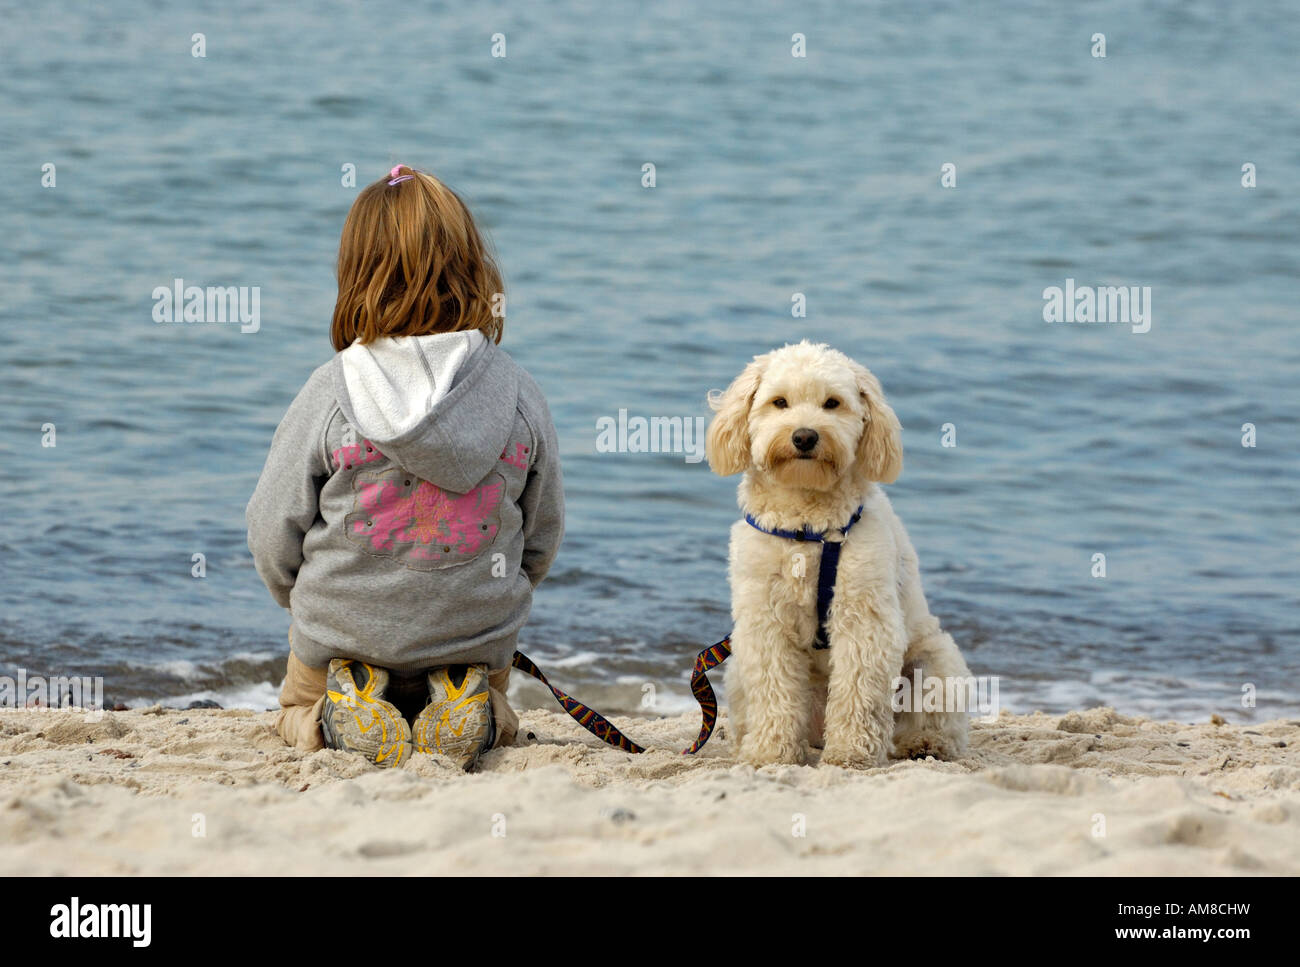 young child with small white pet dog on beach. - Stock Image